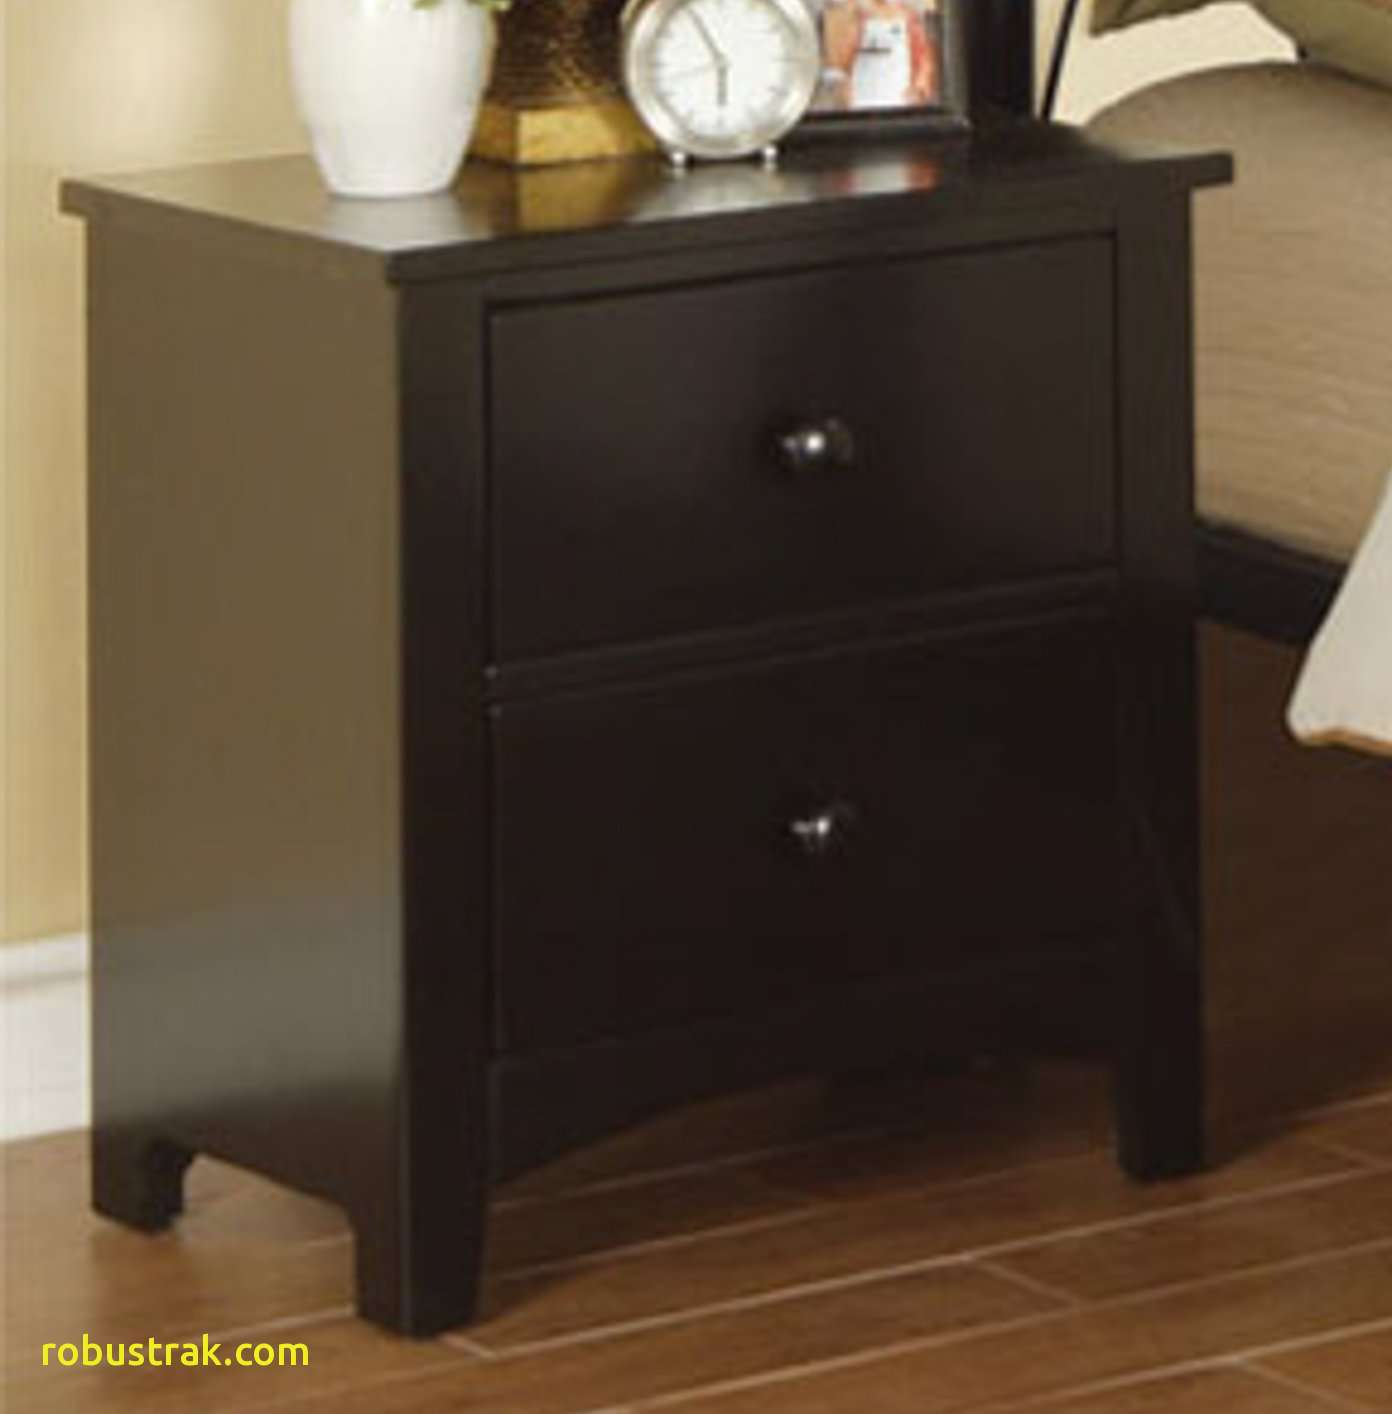 luxury black night stand home design ideas elegant fresh nightstand with timmy accent table wood steal sofa furniture los angeles outdoor buffet hamptons cushions ashley reviews